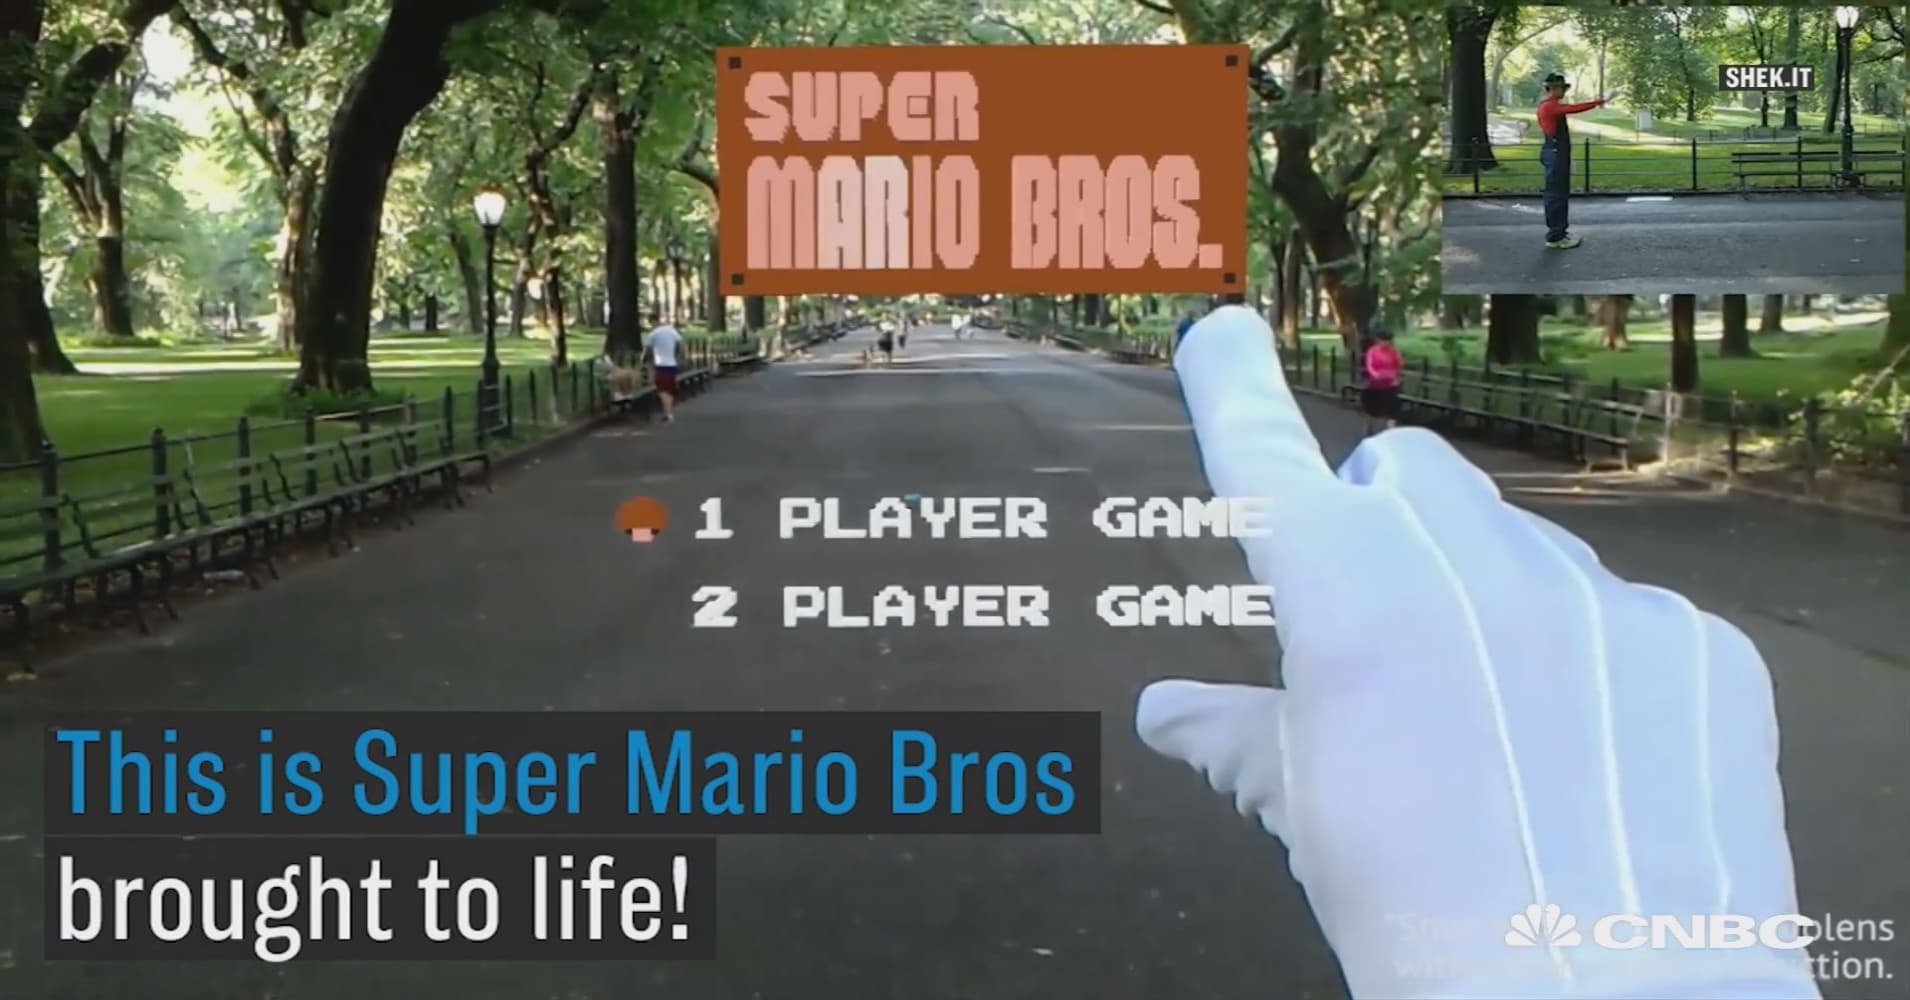 Here's what it looks like to live in the first level of Super Mario Bros.